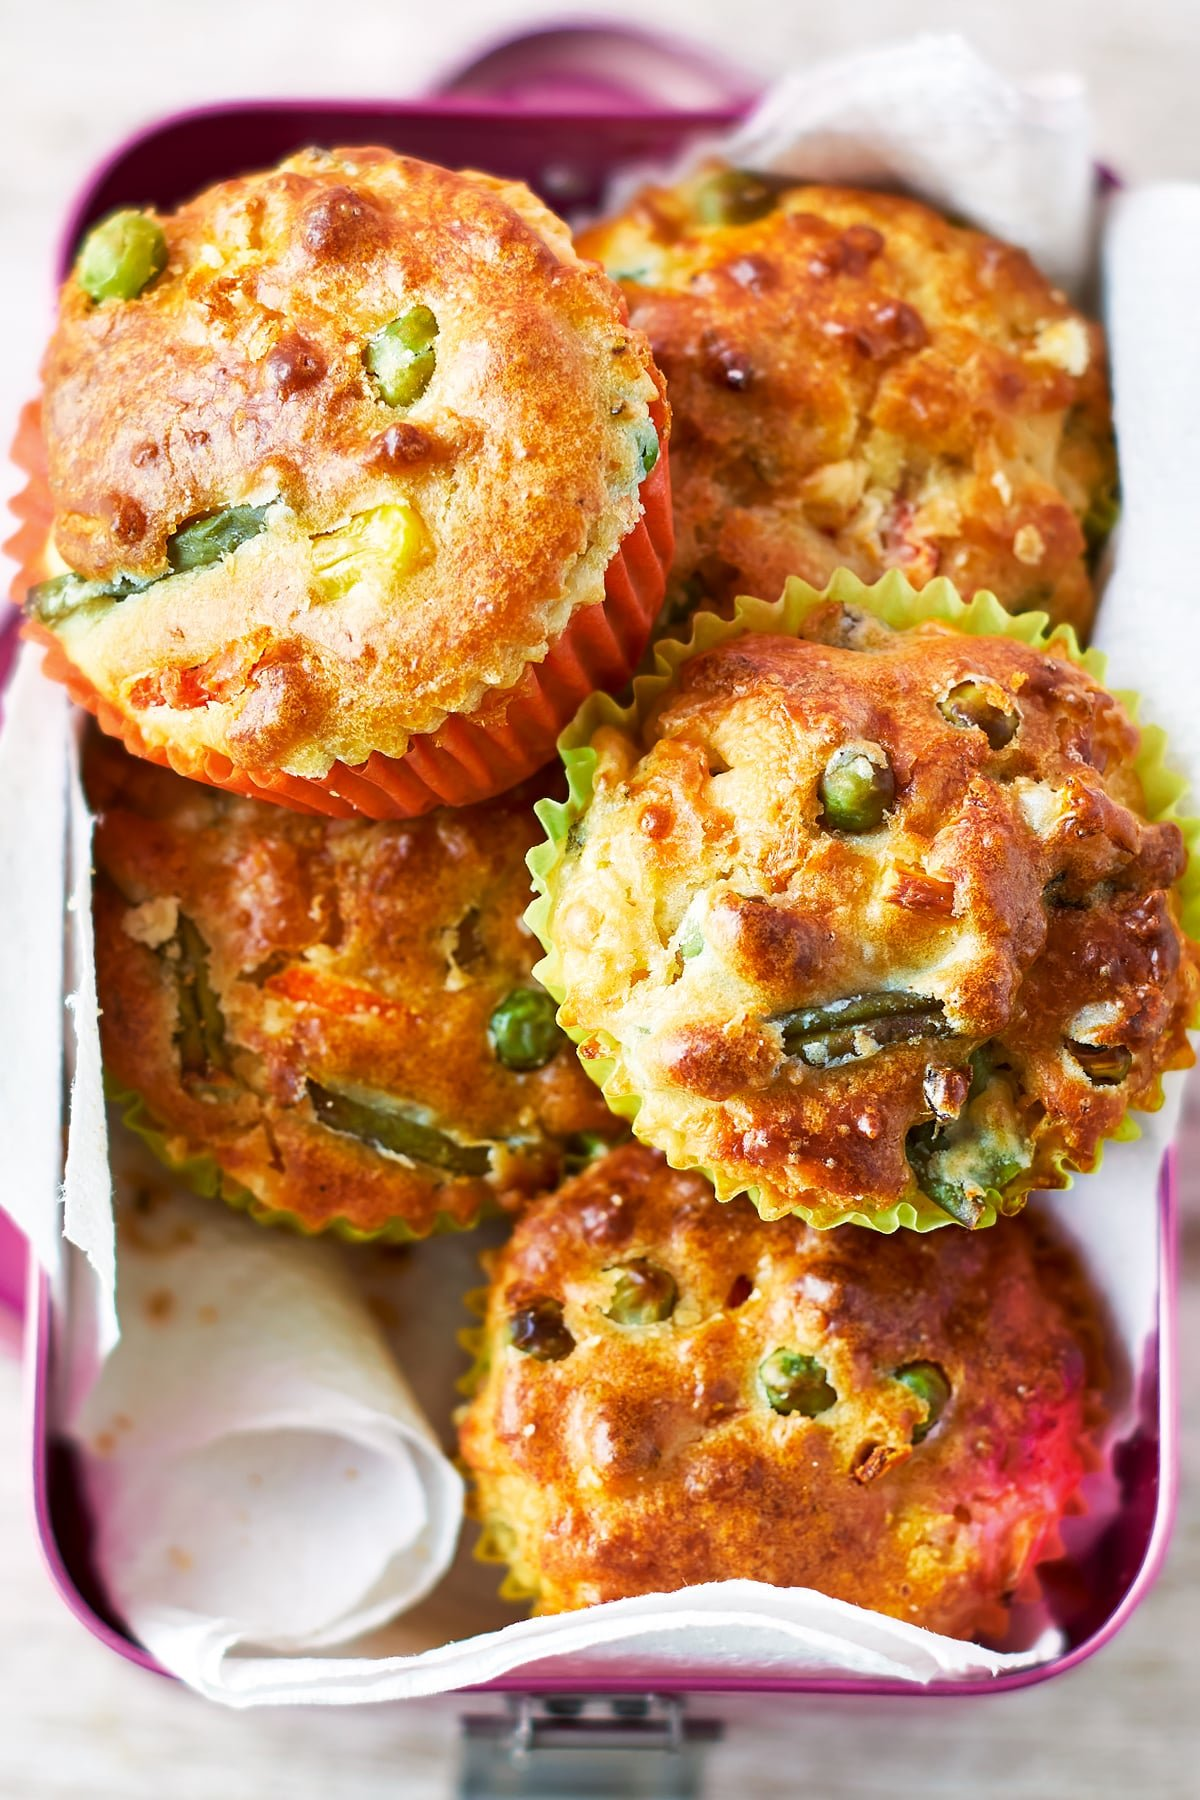 Savoury vegetable muffins in a pink lunchbox lined with paper. The muffins have golden brown tops, studded with peas and beans.